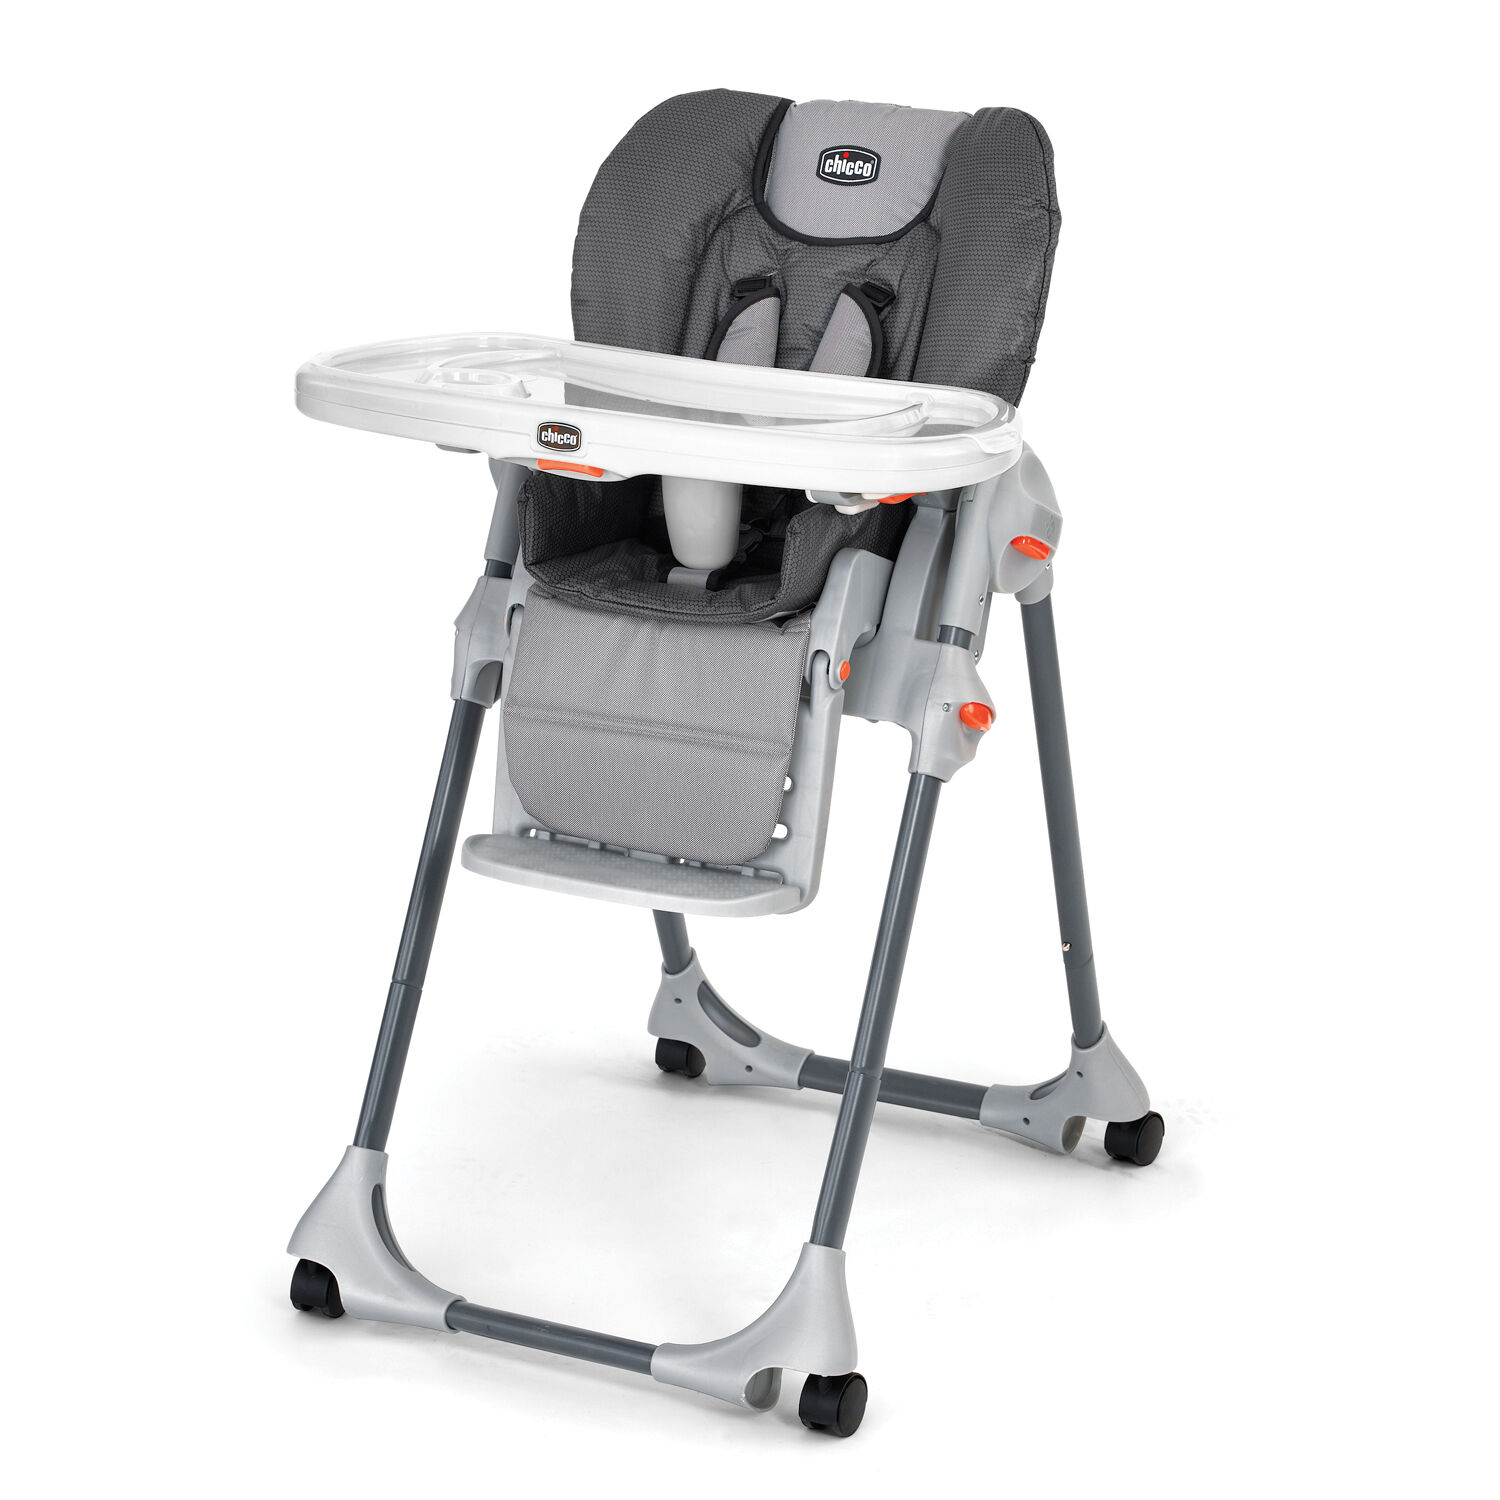 target high chair booster seat oakleigh dining table with 6 chairs argos polly highchair - graphica